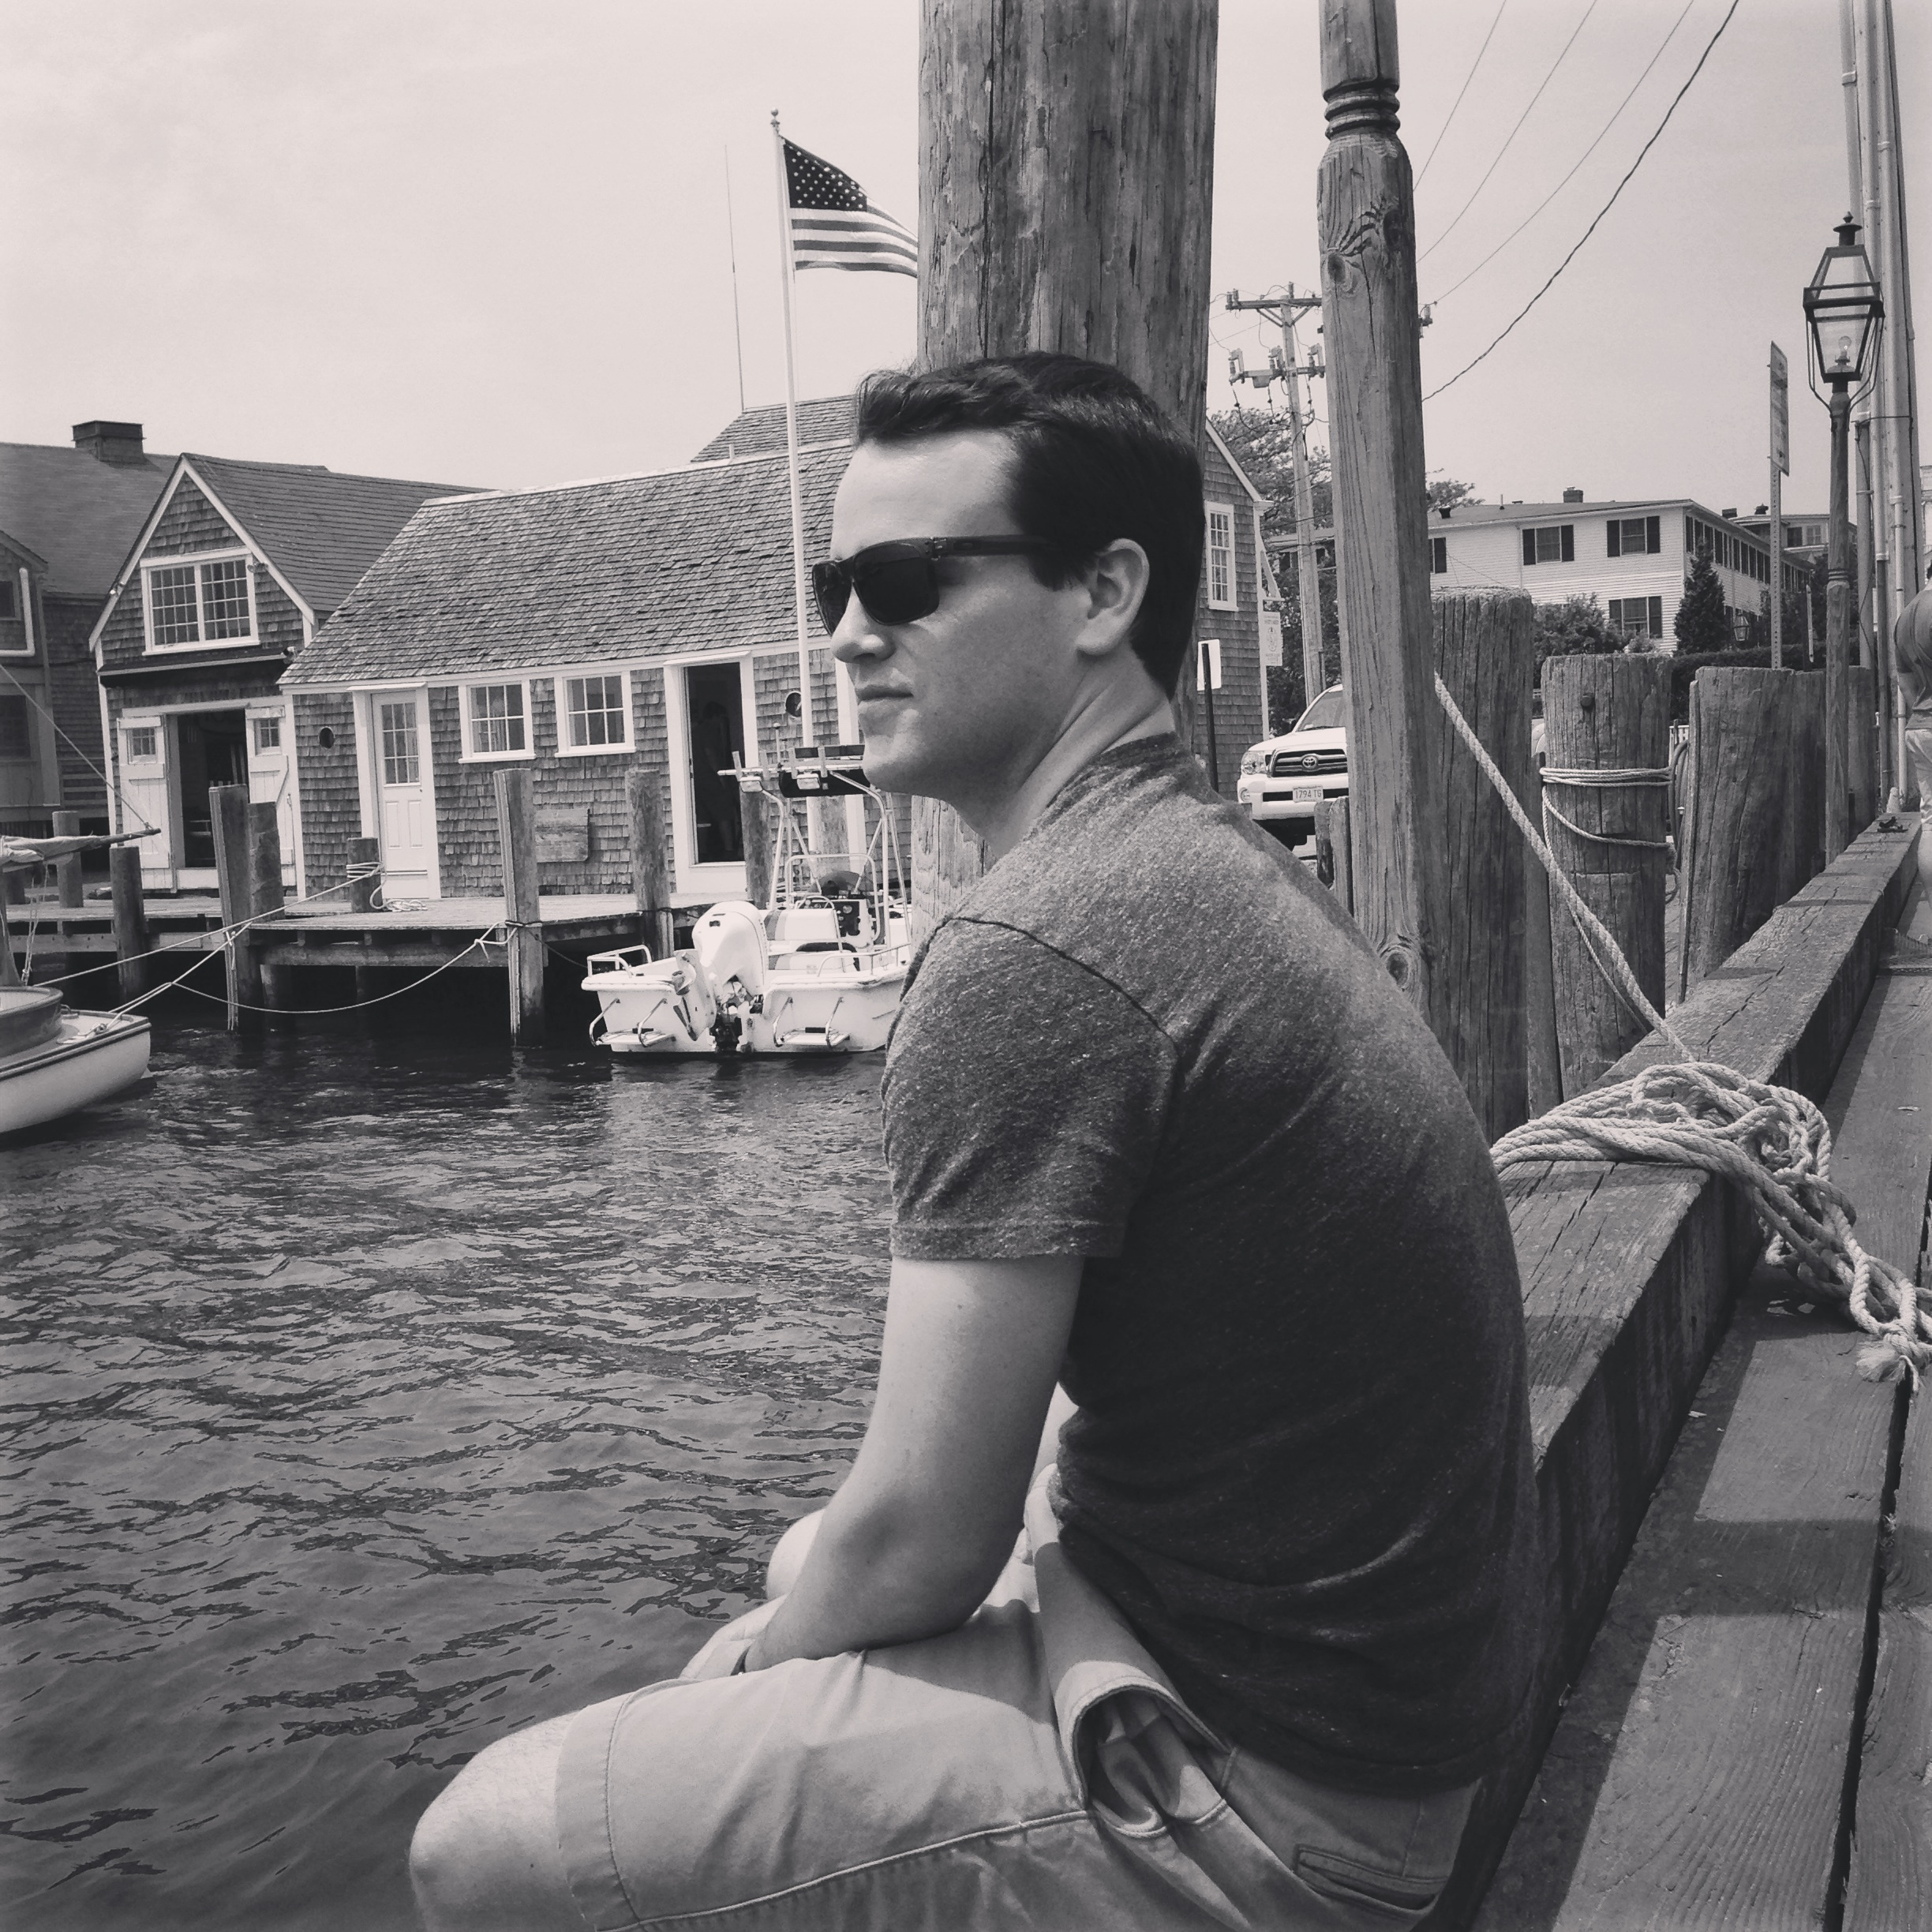 Steve in Edgartown